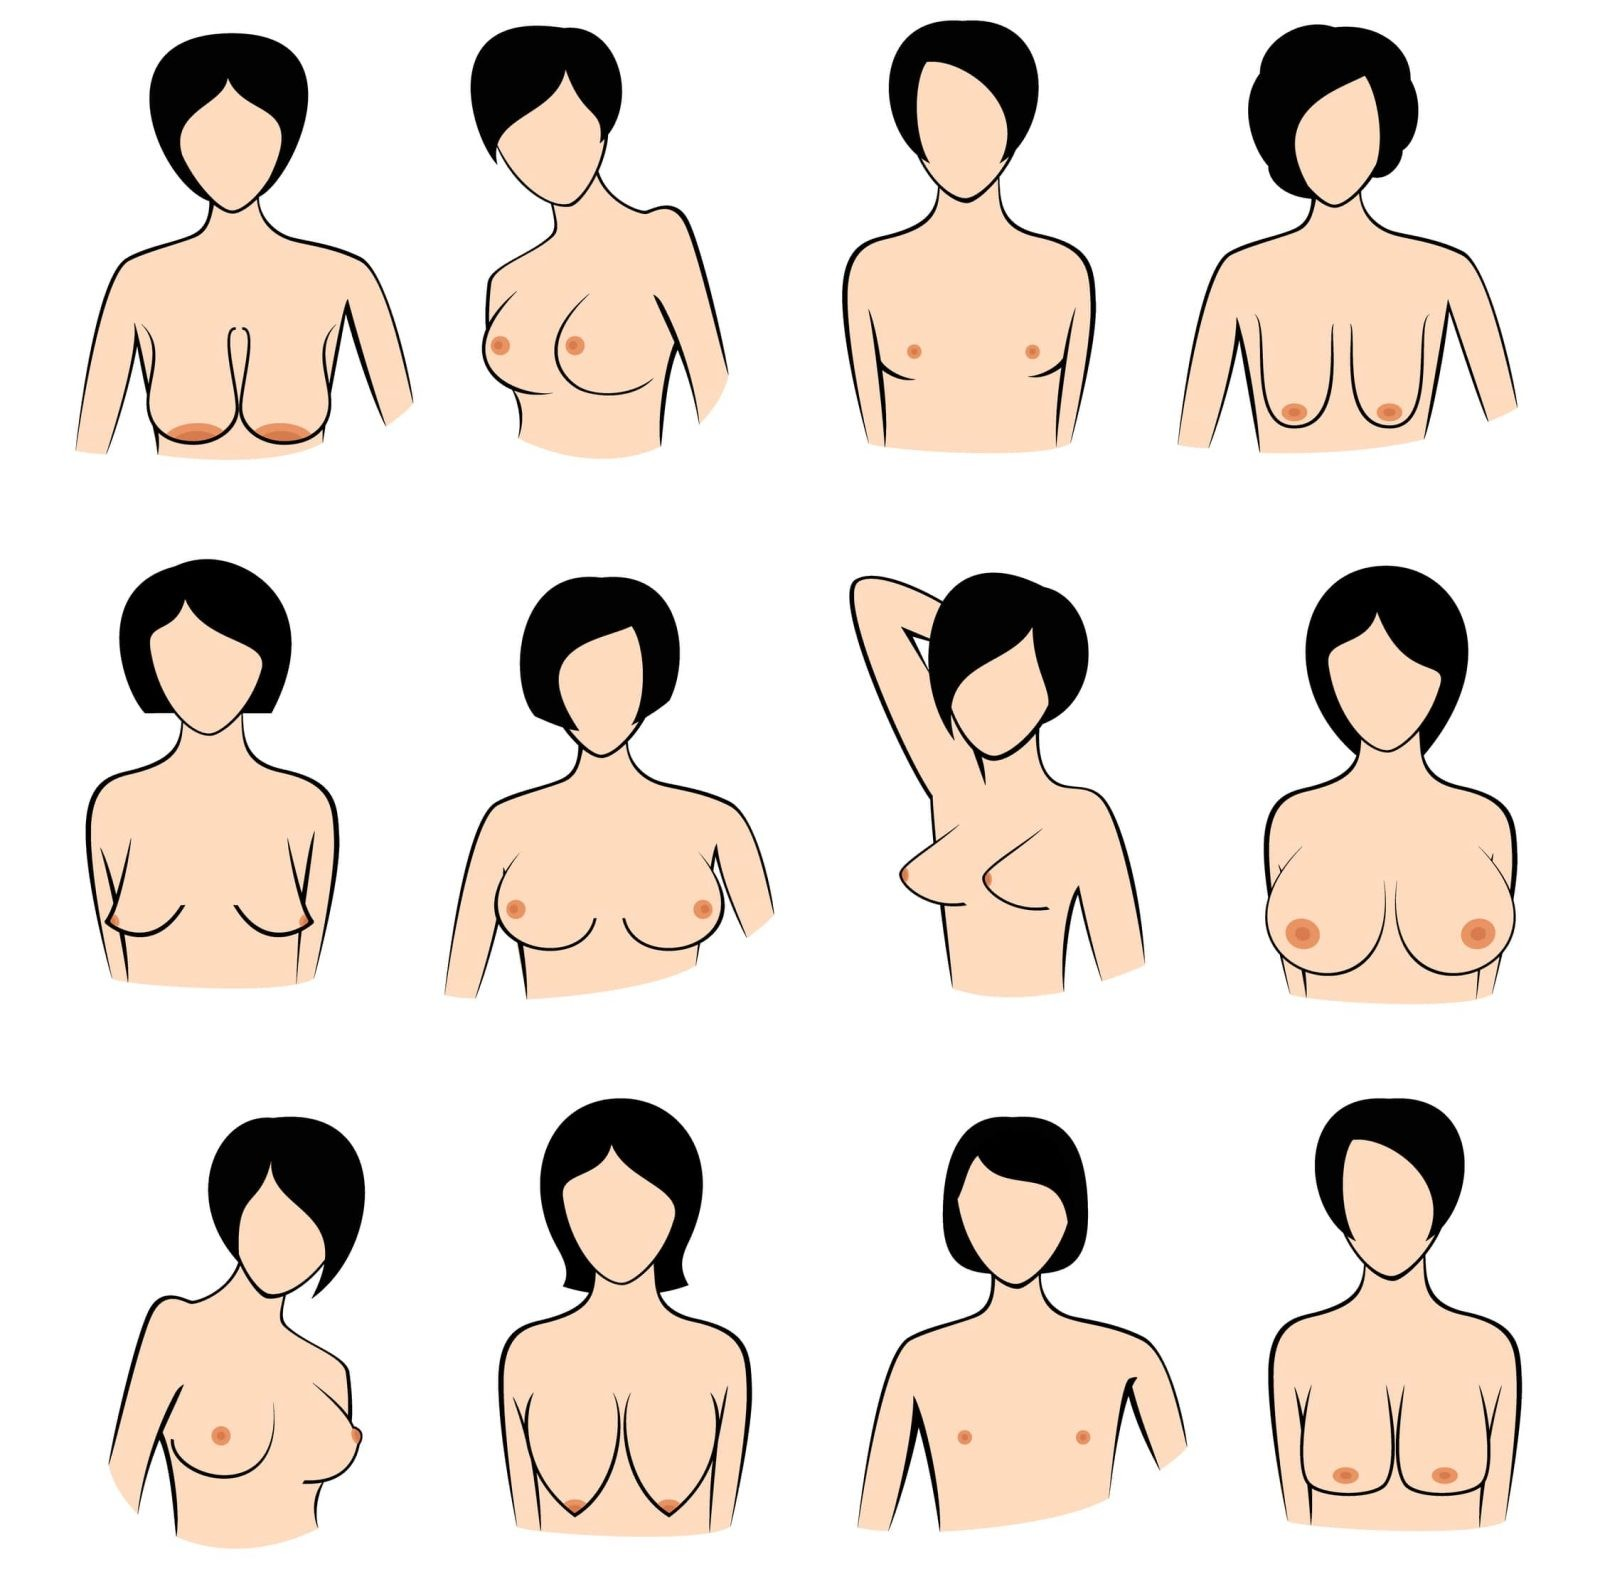 Seven Boob Truths That Everyone Should Know About Project Vanity